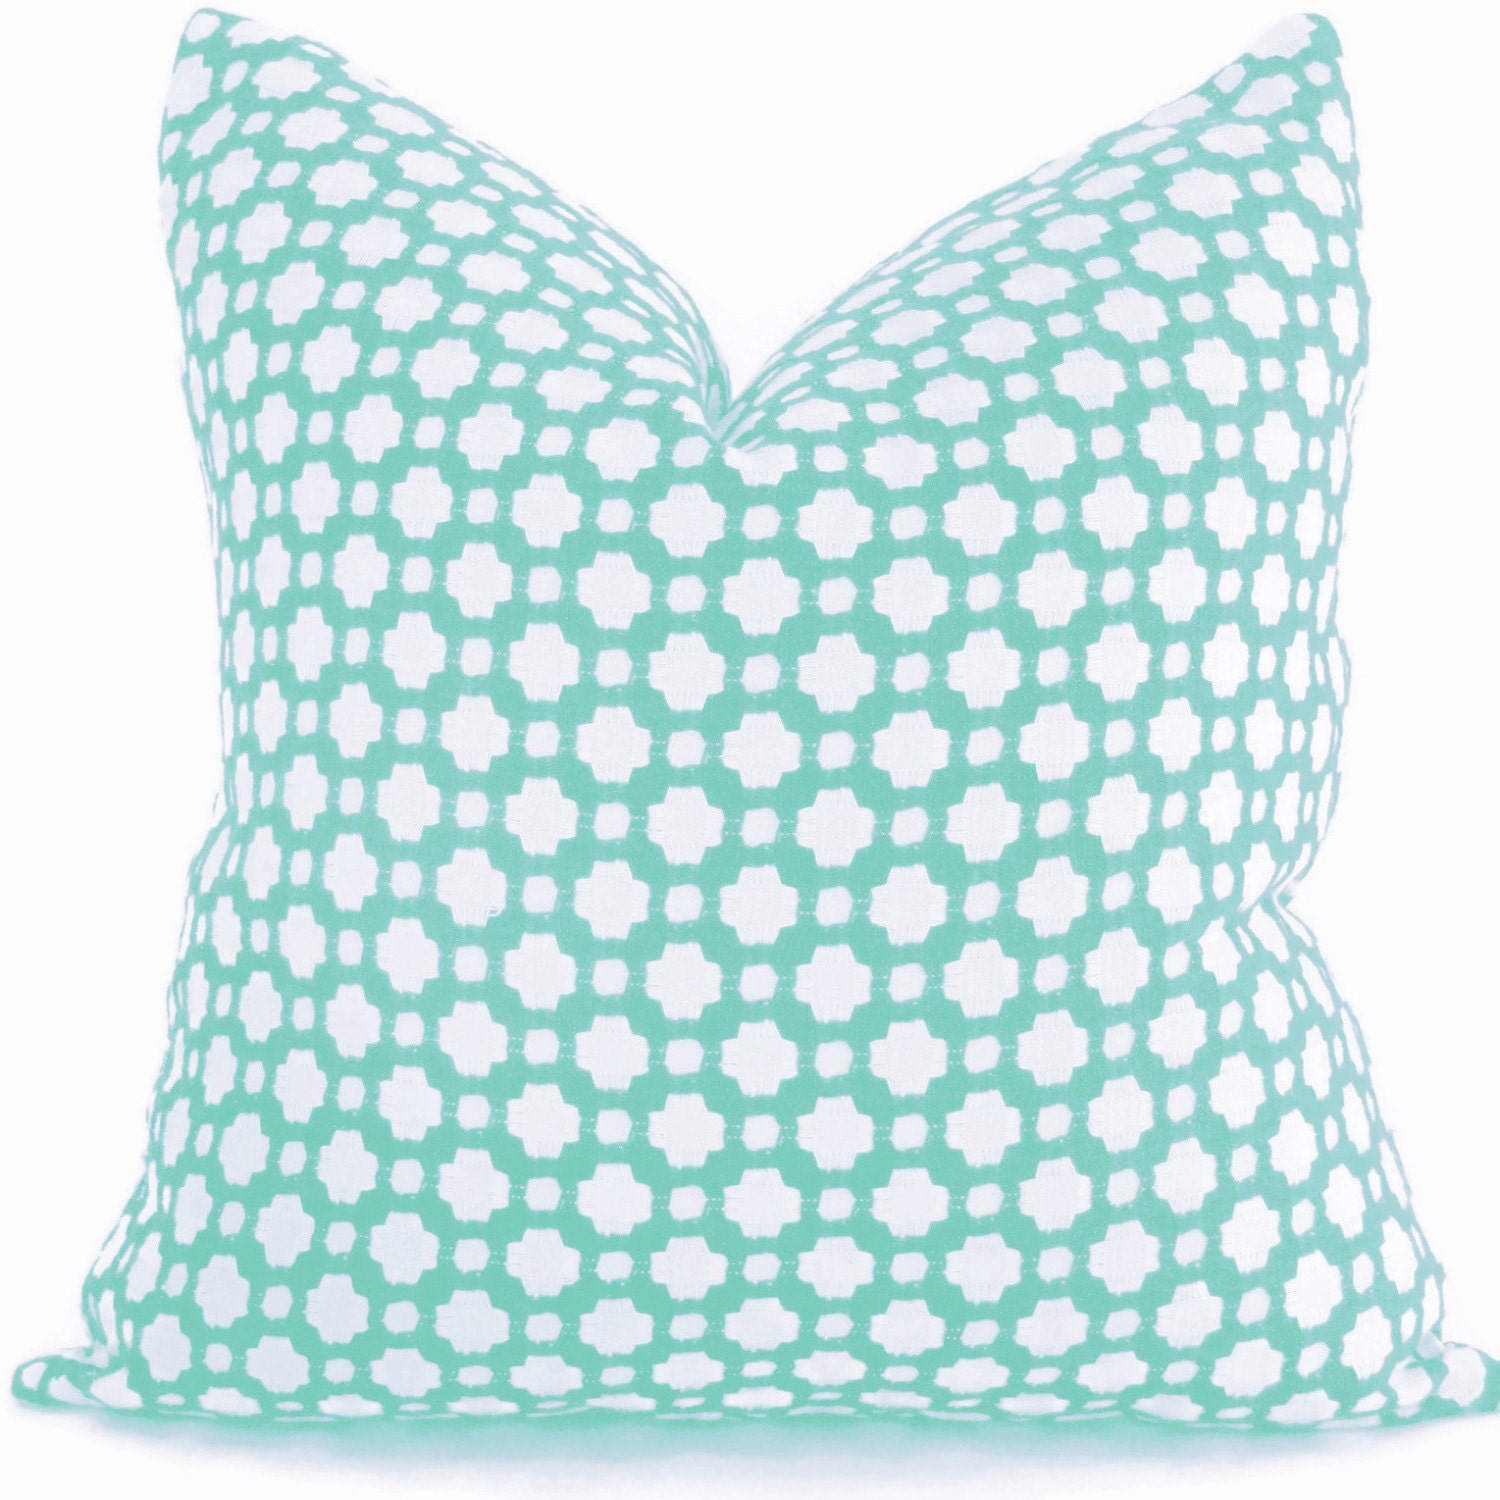 Pool Blue Throw Pillows : Pillow Cover in Schumacher Betwixt in Pool Turquoise